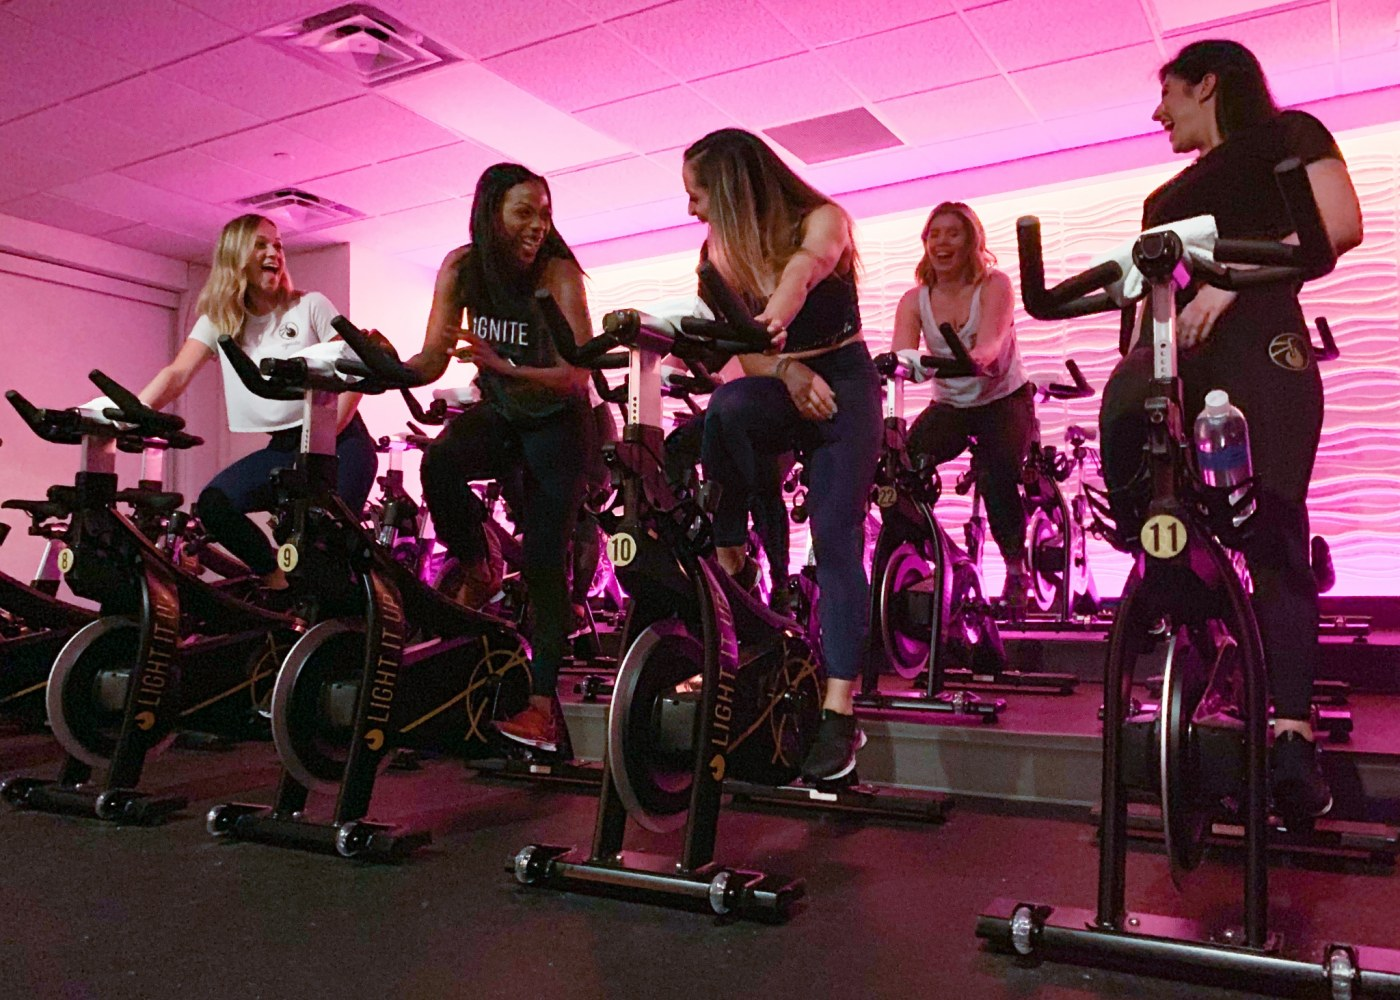 Photo of women on indoor bikes at Ignite Cycle, located in the Pepper Place in Birmingham, Alabama